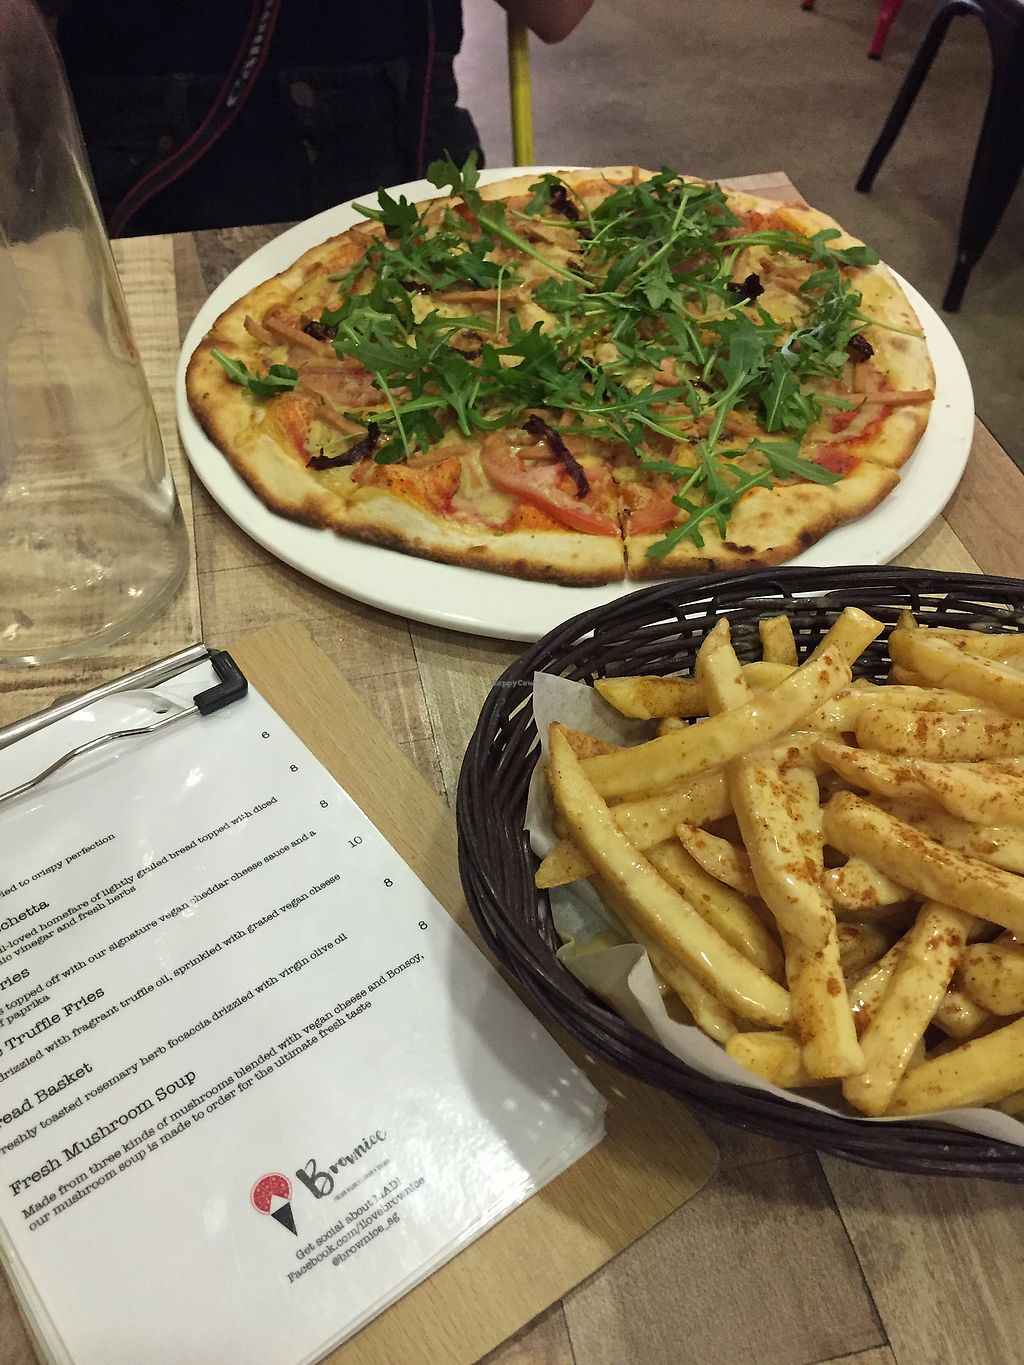 "Photo of Brownice Italian Bistro  by <a href=""/members/profile/meislnicoline"">meislnicoline</a> <br/>Vegan pizza and cheese fries  <br/> April 12, 2018  - <a href='/contact/abuse/image/59333/384277'>Report</a>"